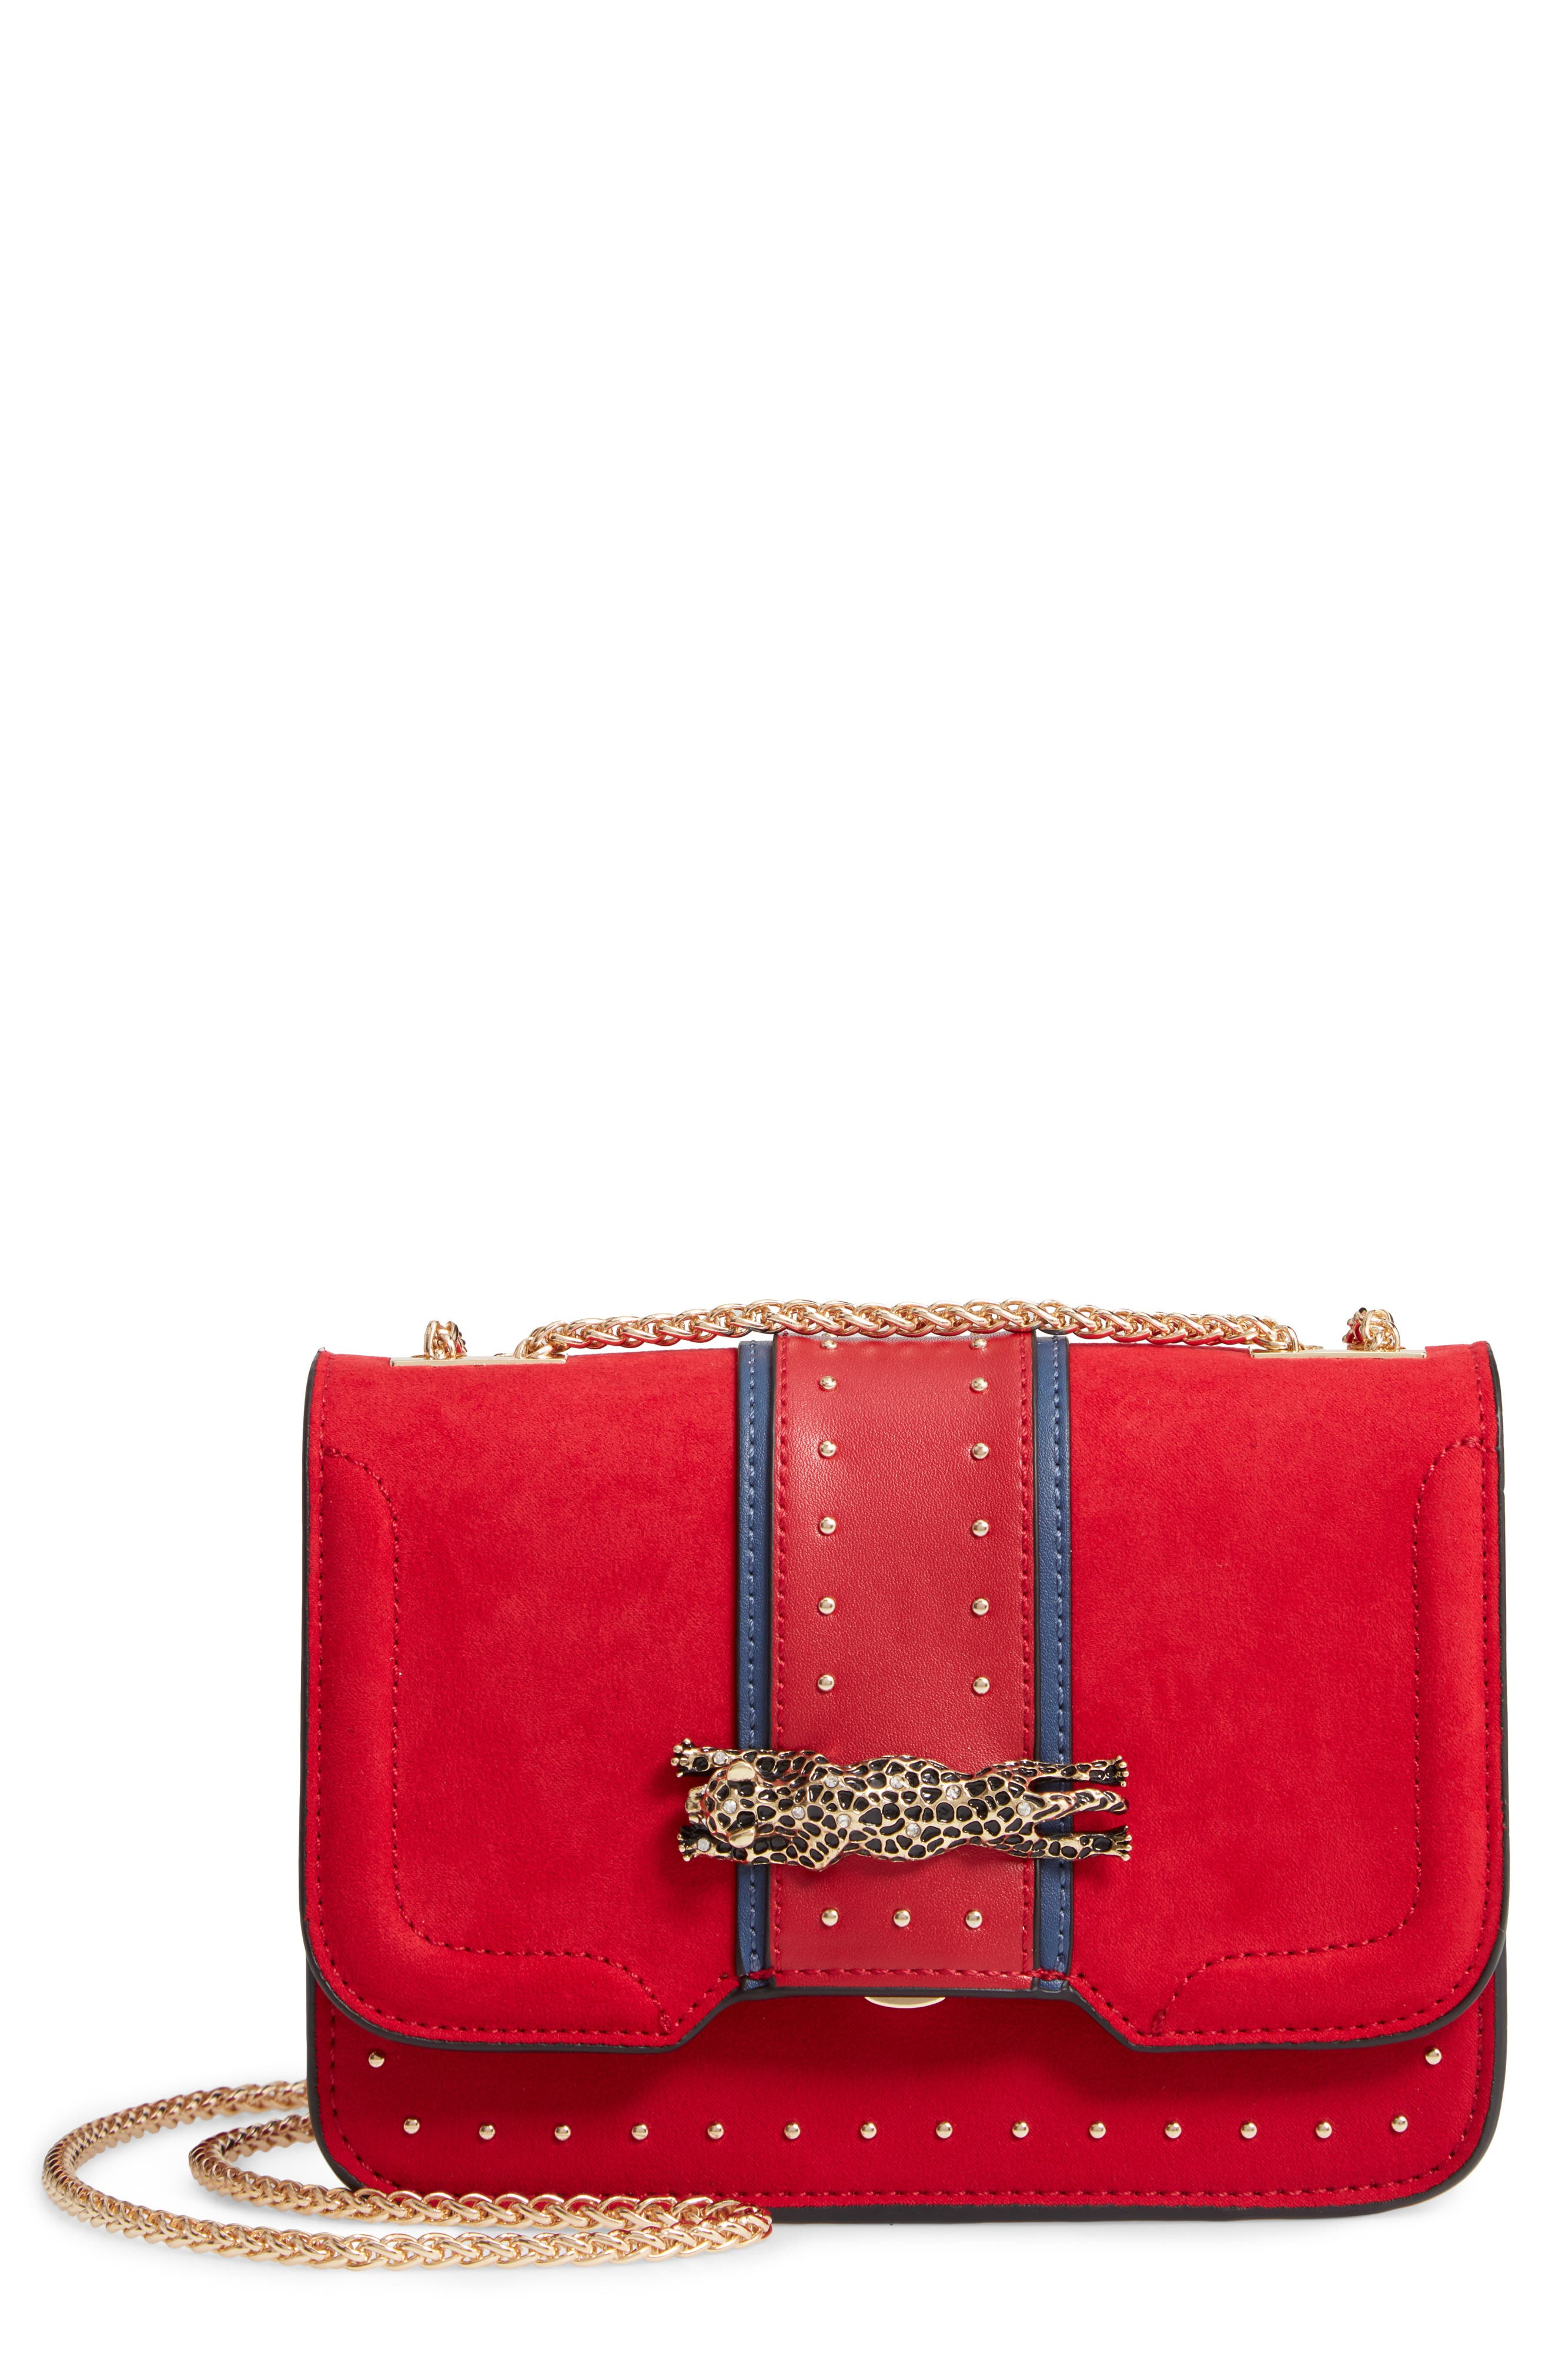 Panther Crossbody Bag,                             Main thumbnail 1, color,                             RED